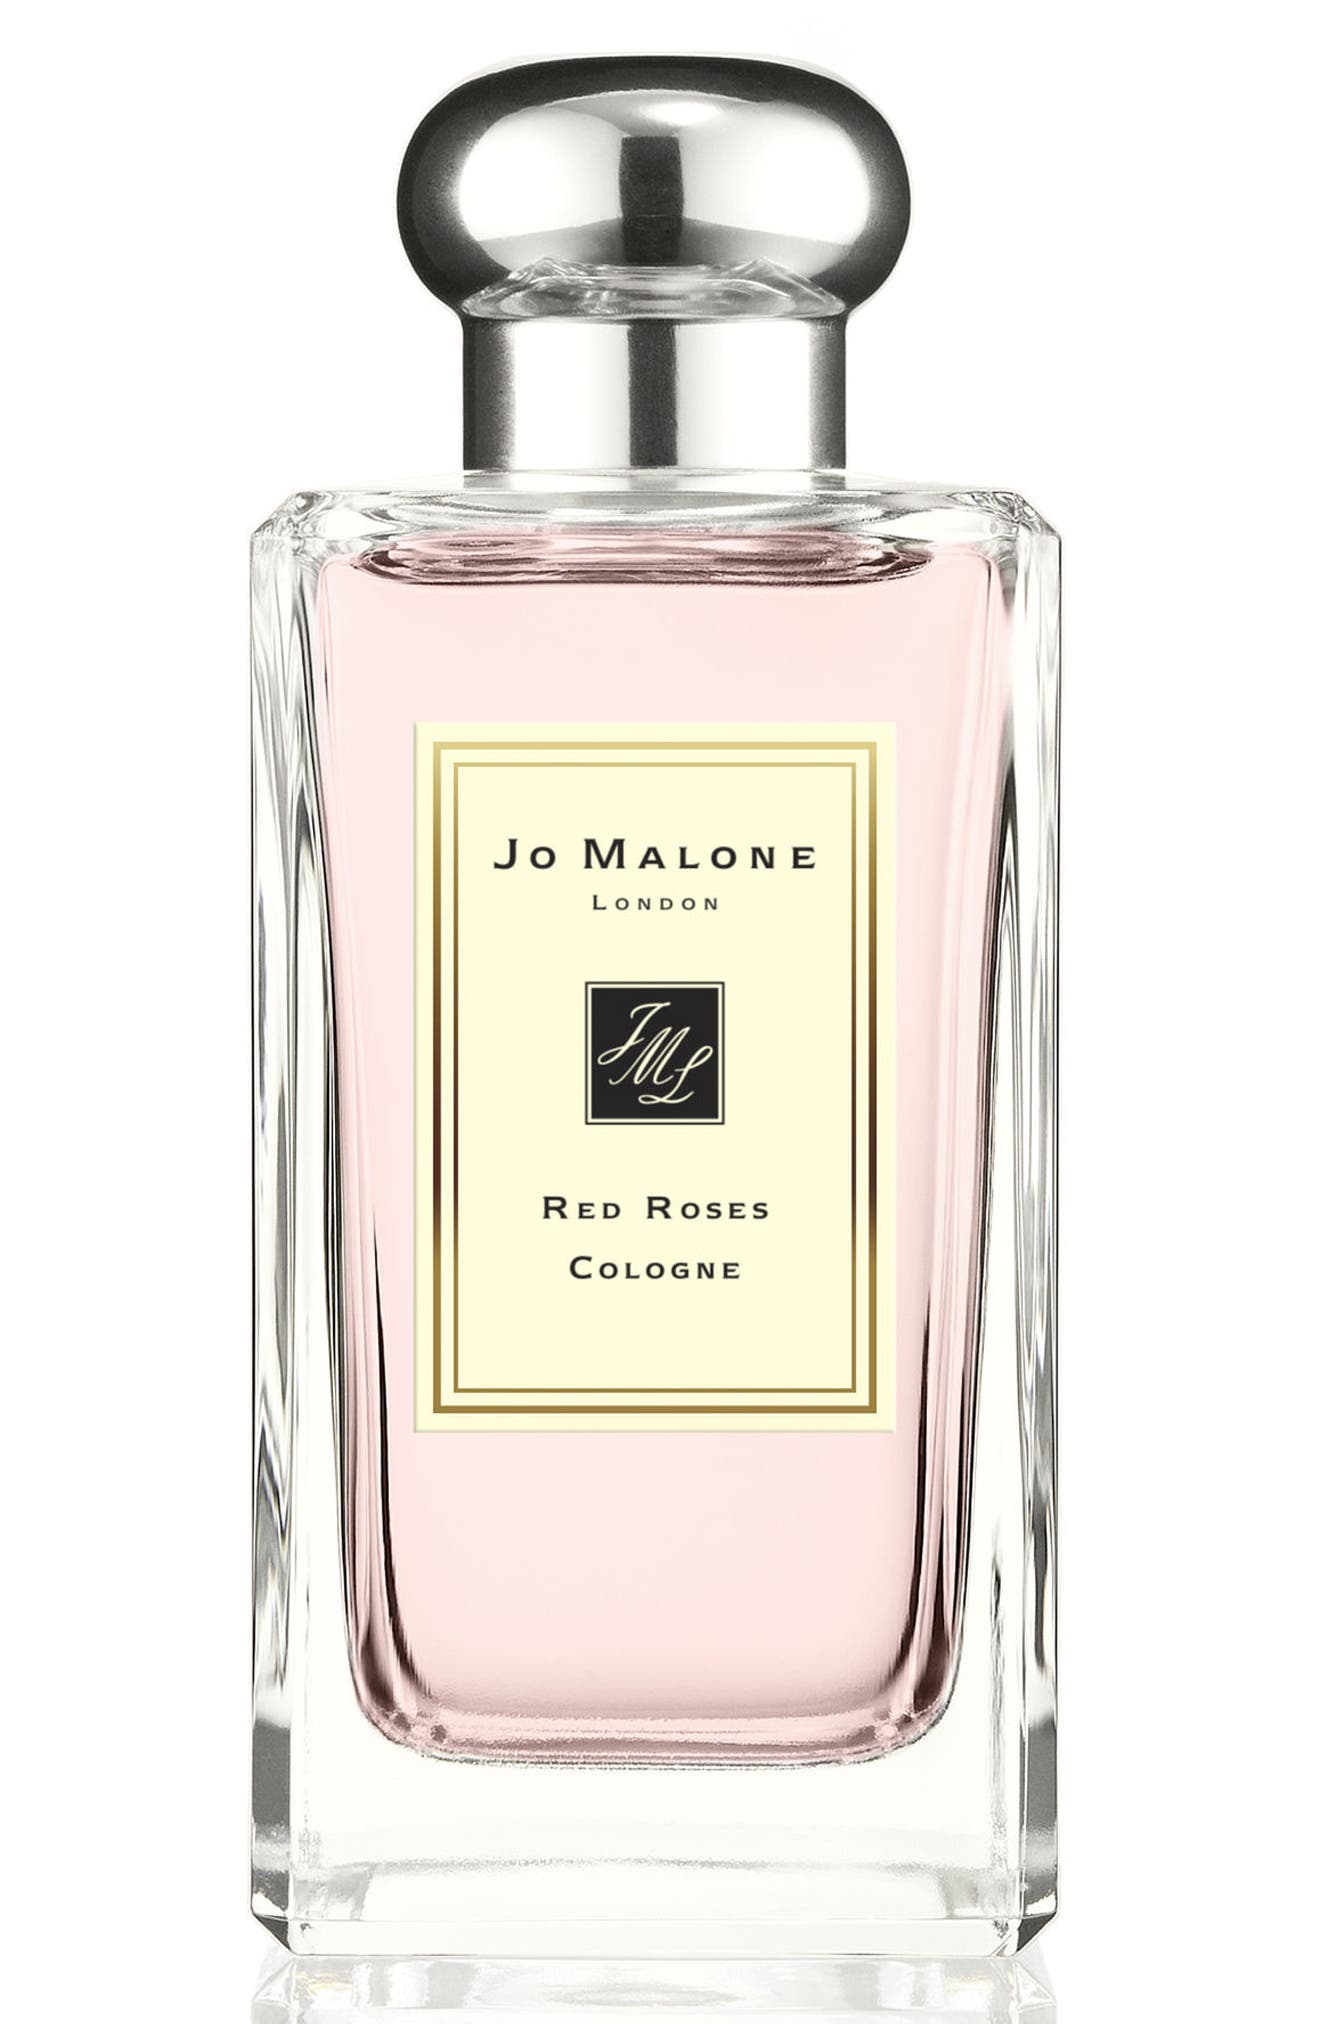 Alternate Image 1 Selected - Jo Malone London™ 'Red Roses' Cologne (3.4 oz.)